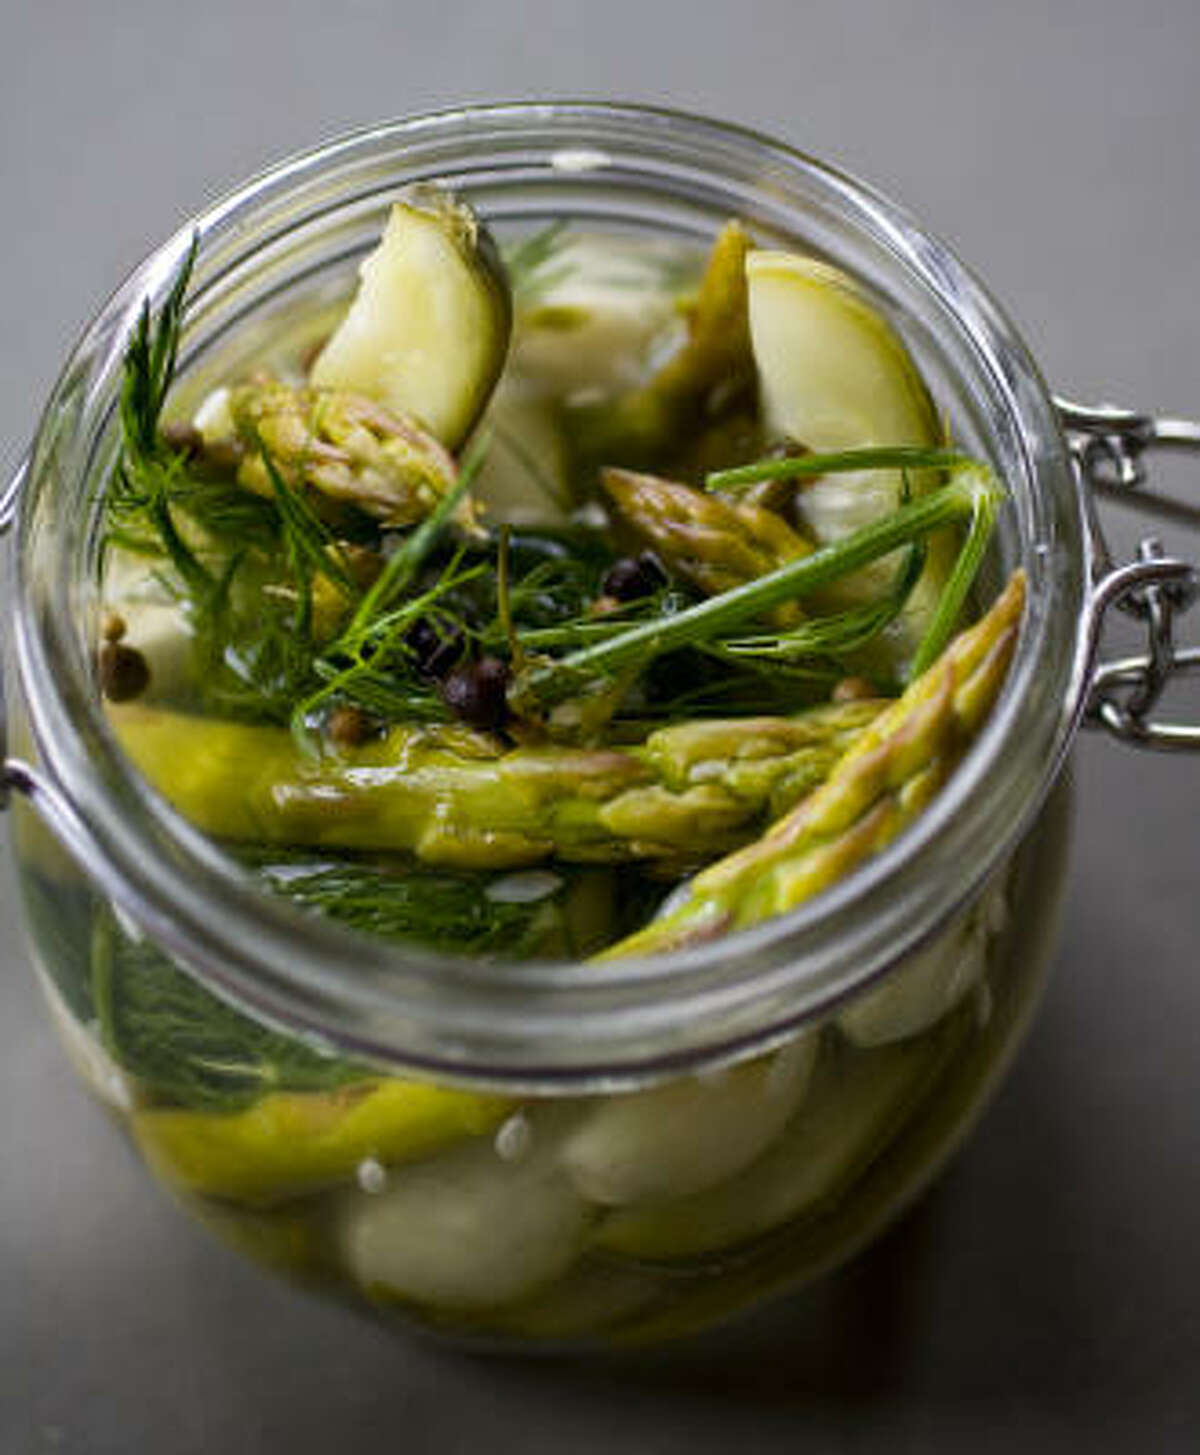 House-cured half-sour garlic, dill pickles and asparagus